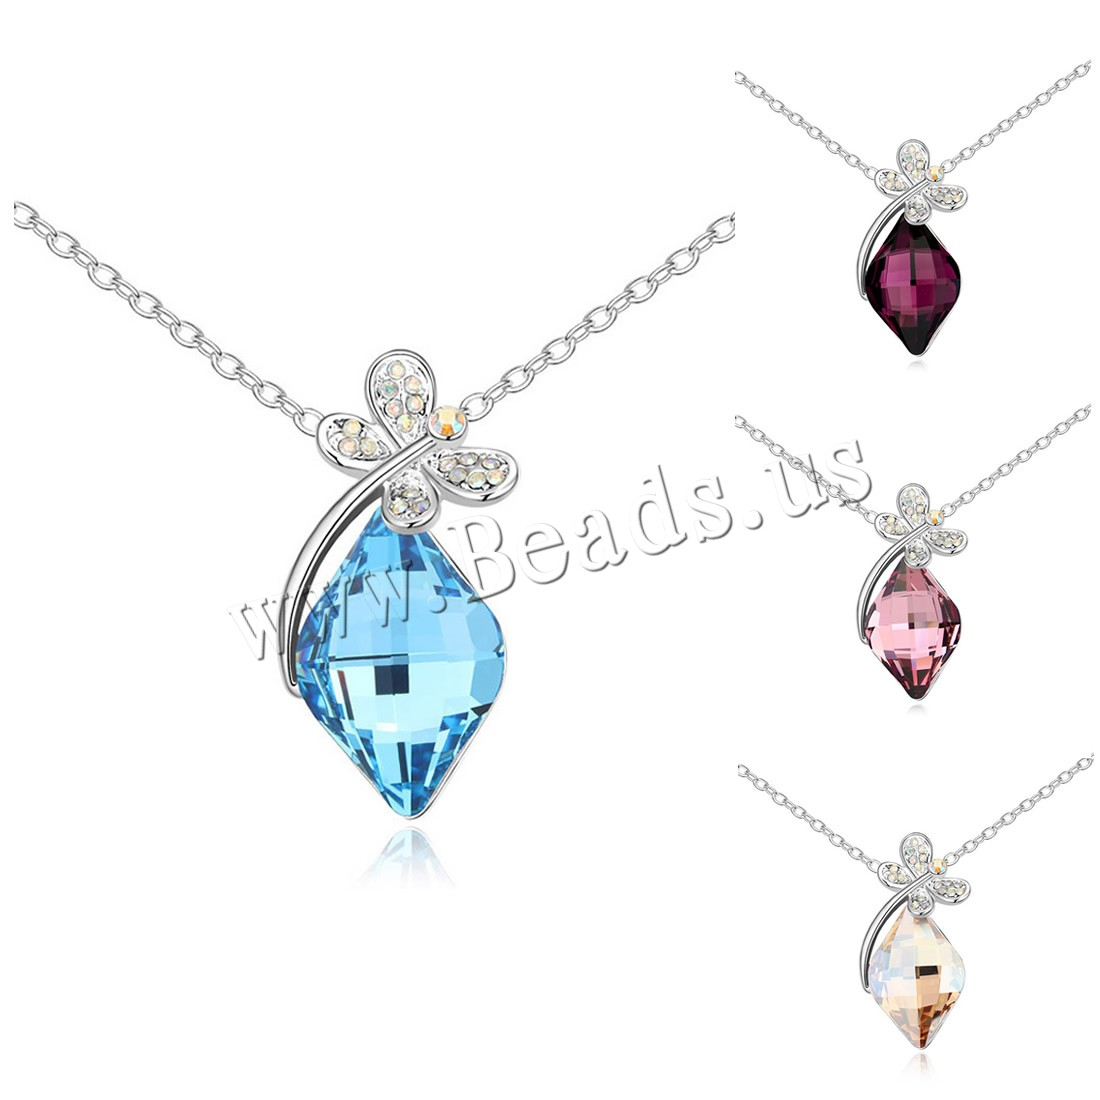 Buy CRYSTALLIZED™ Element Crystal Necklace Brass CRYSTALLIZED™ 5cm extender chain platinum plated oval chain & woman & faceted colors choice nickel lead & cadmium free 17x35mm Sold Per Approx 15.5 Inch Strand